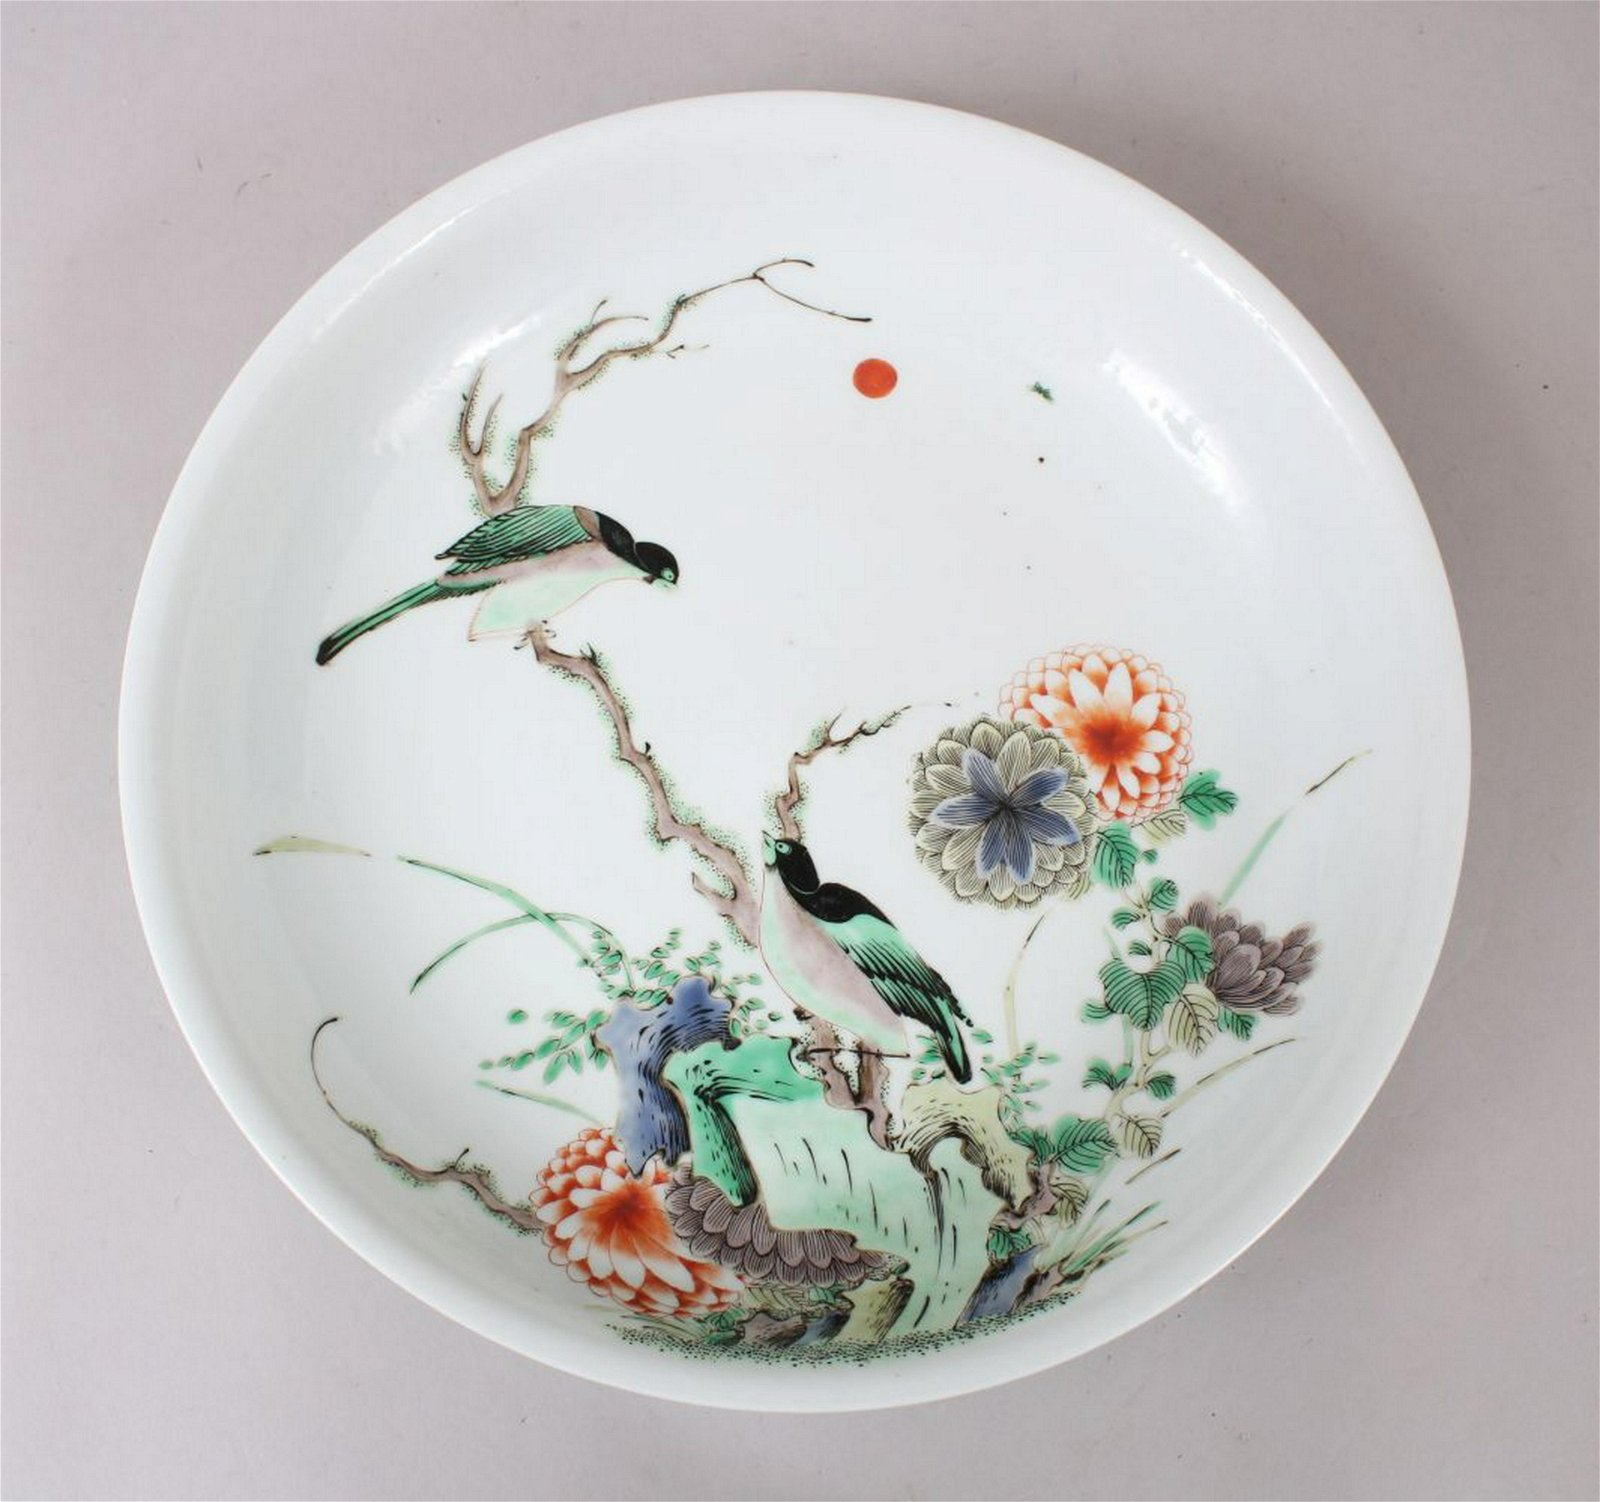 A LARGE CHINESE KANGXI STYLE FAMILLE ROSE SAUCER DISH